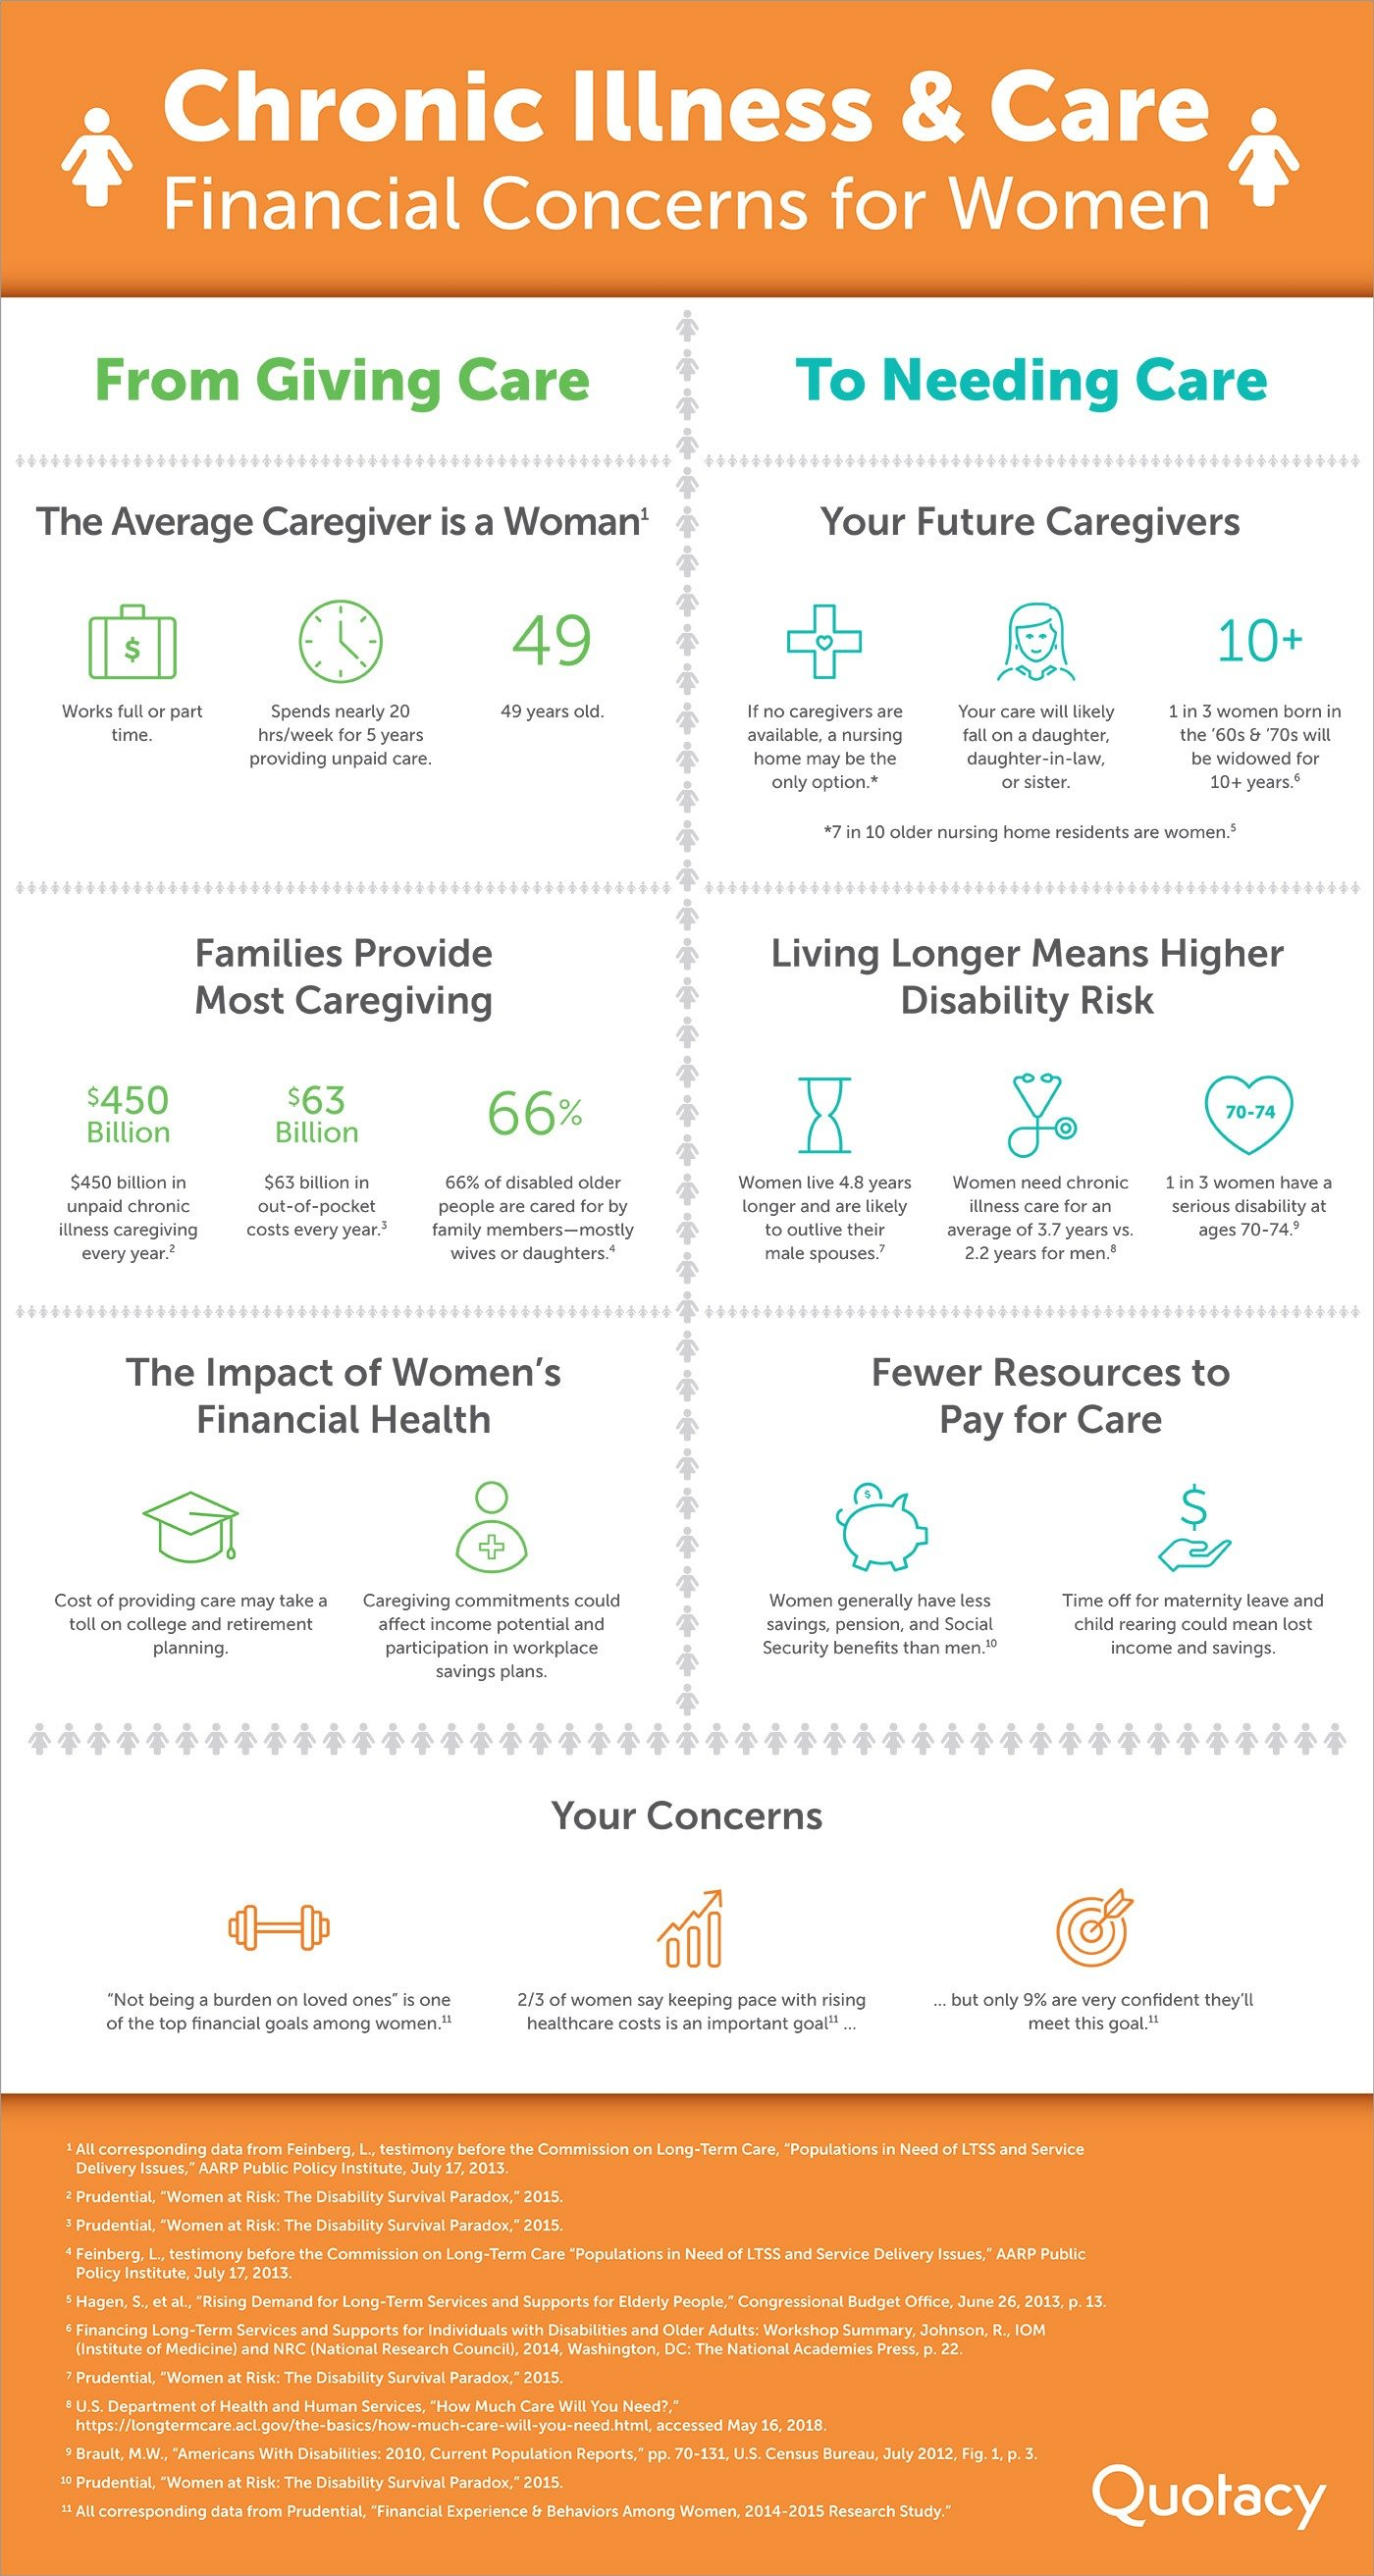 "Image of infographic titled ""Chronic Illness & Care, Financial Concerns for Women."""